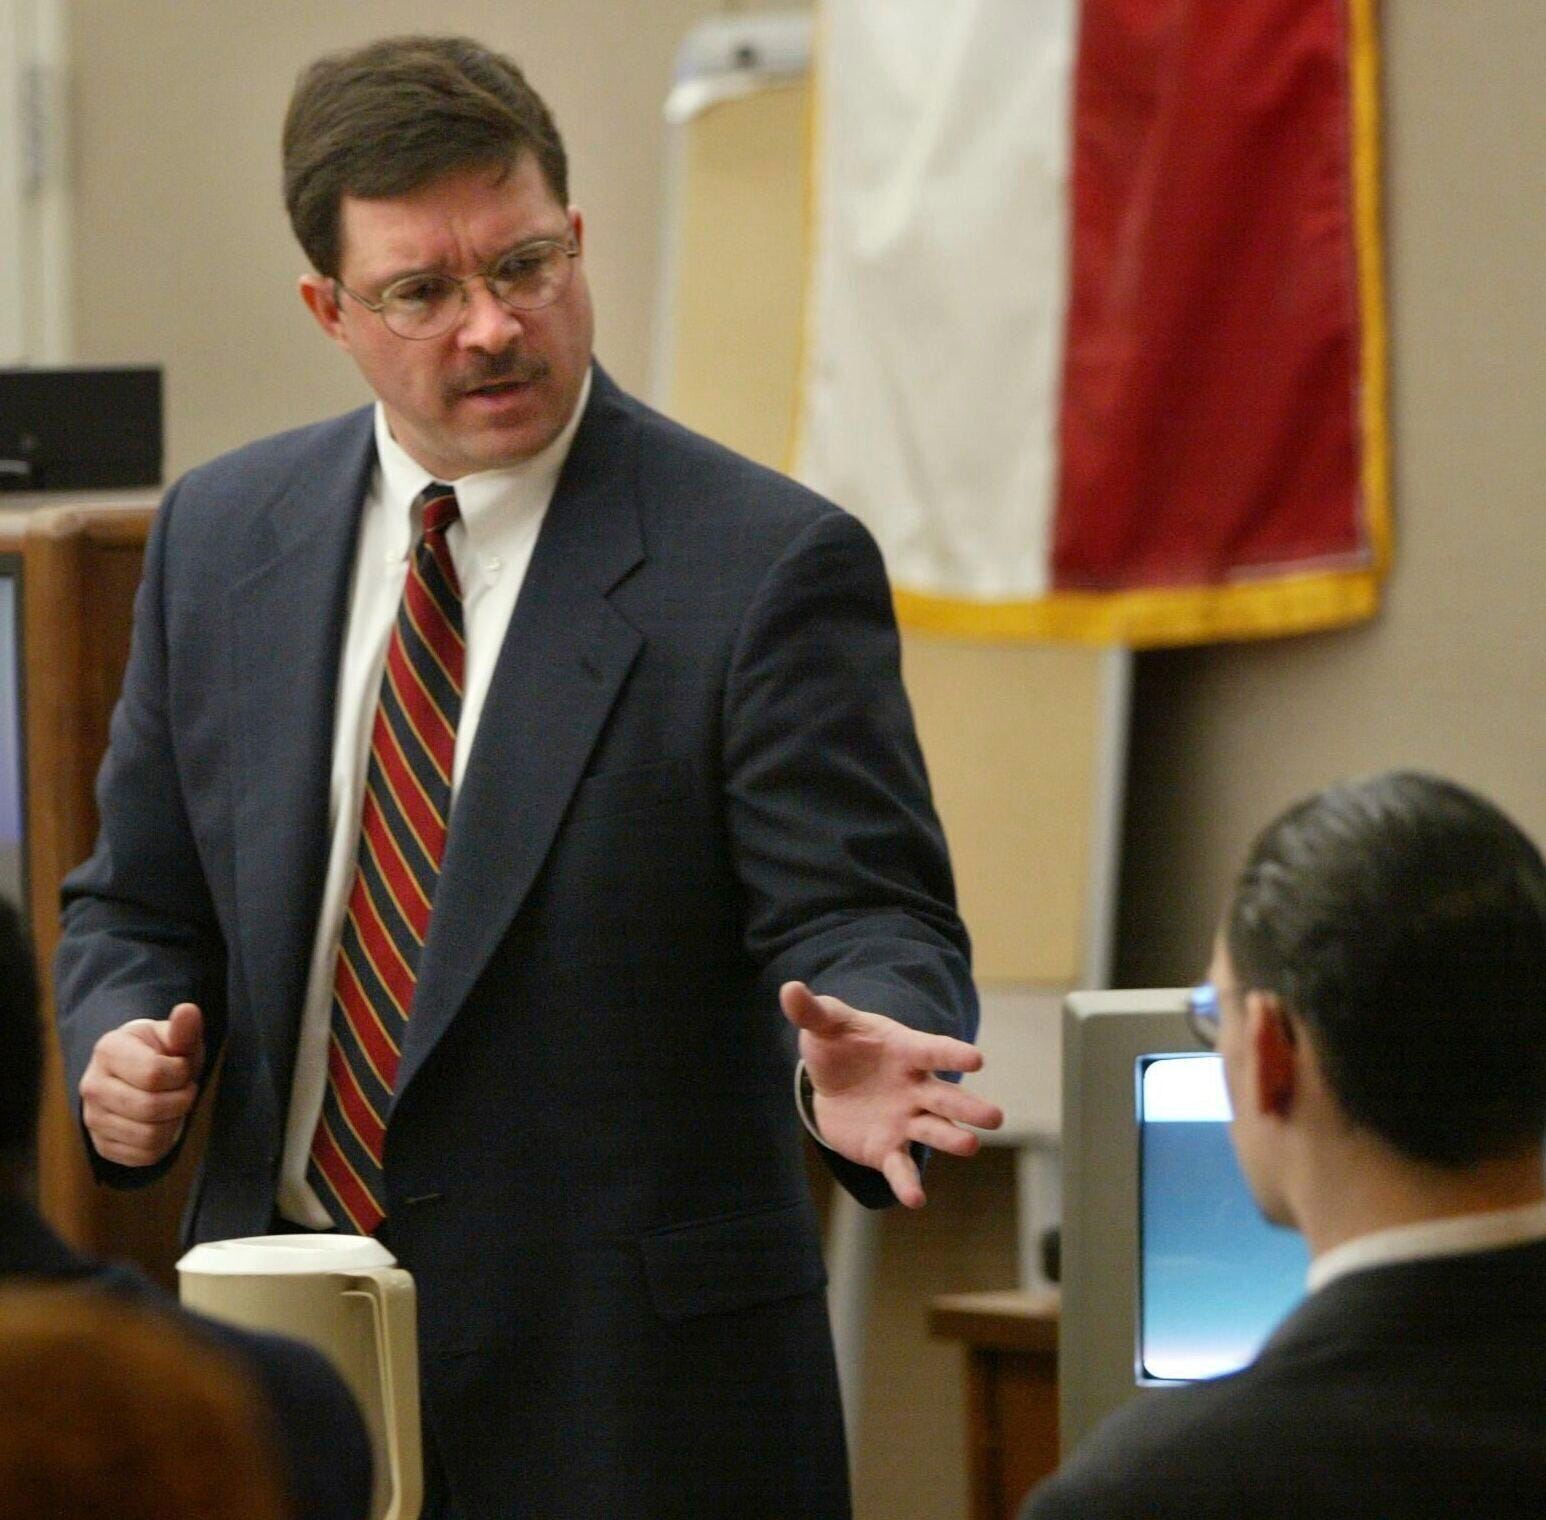 Ex-prosecutor disbarred after wrongful convictions in Texas 2